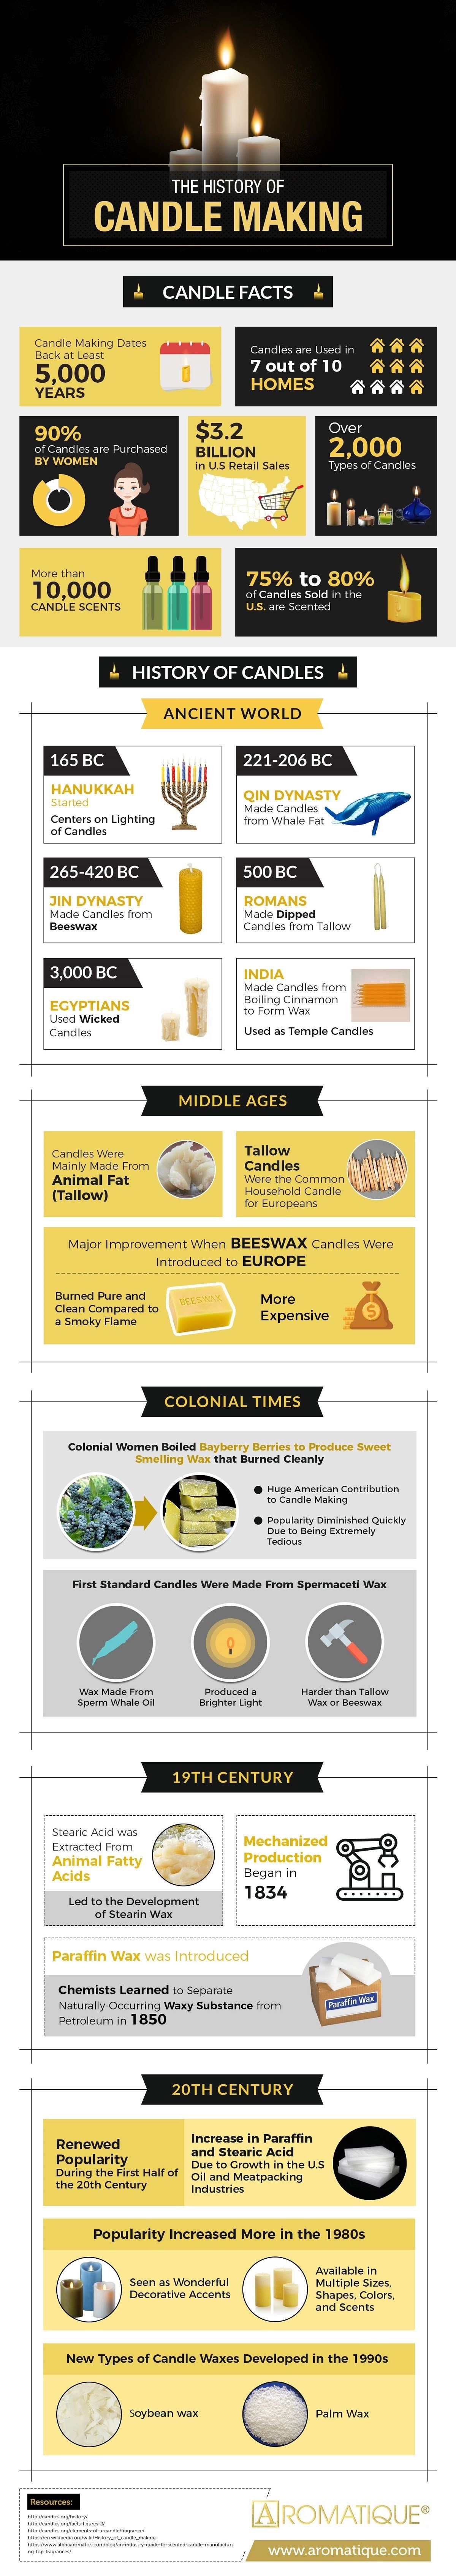 The History of Candle Making #infographic